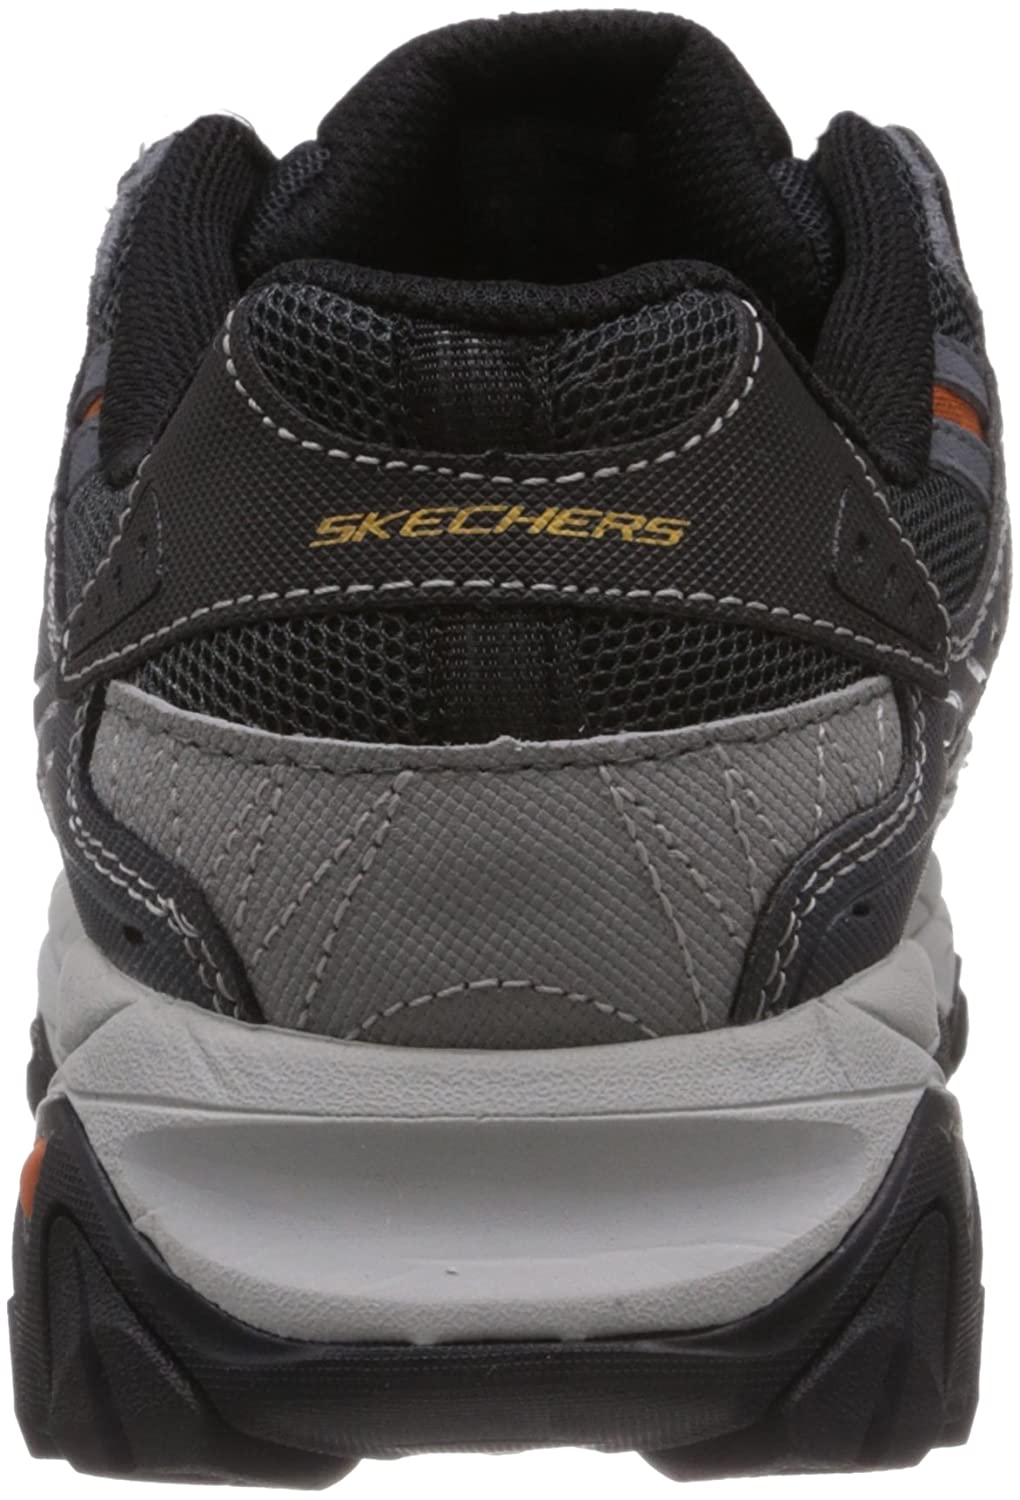 Skechers-Afterburn-Memory-Foam-M-Fit-Men-039-s-Sport-After-Burn-Sneakers-Shoes thumbnail 36